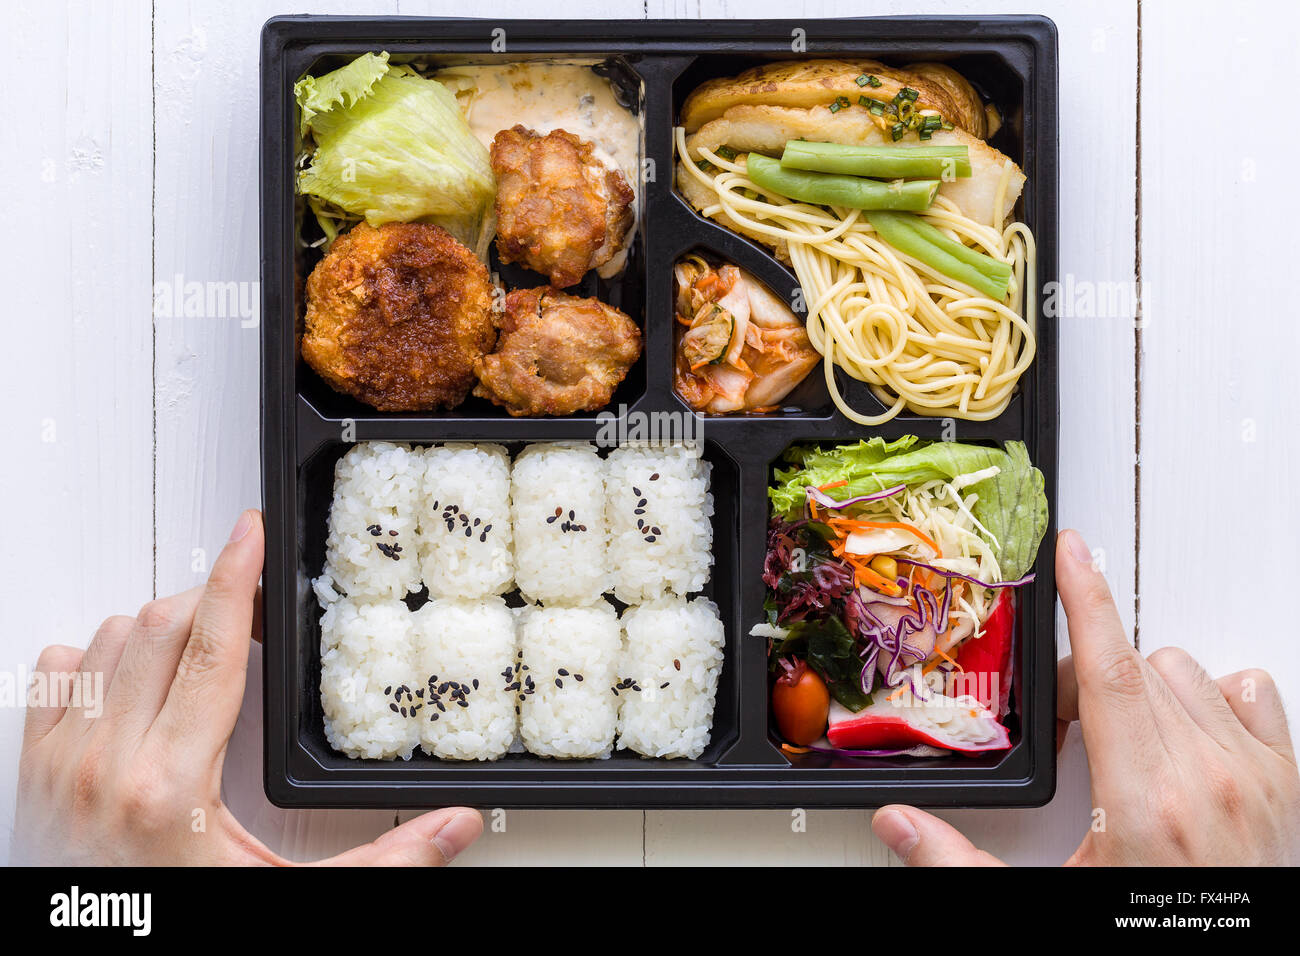 Bento Box Set Traditional Japanese Food Set For Lunch Stock Photo